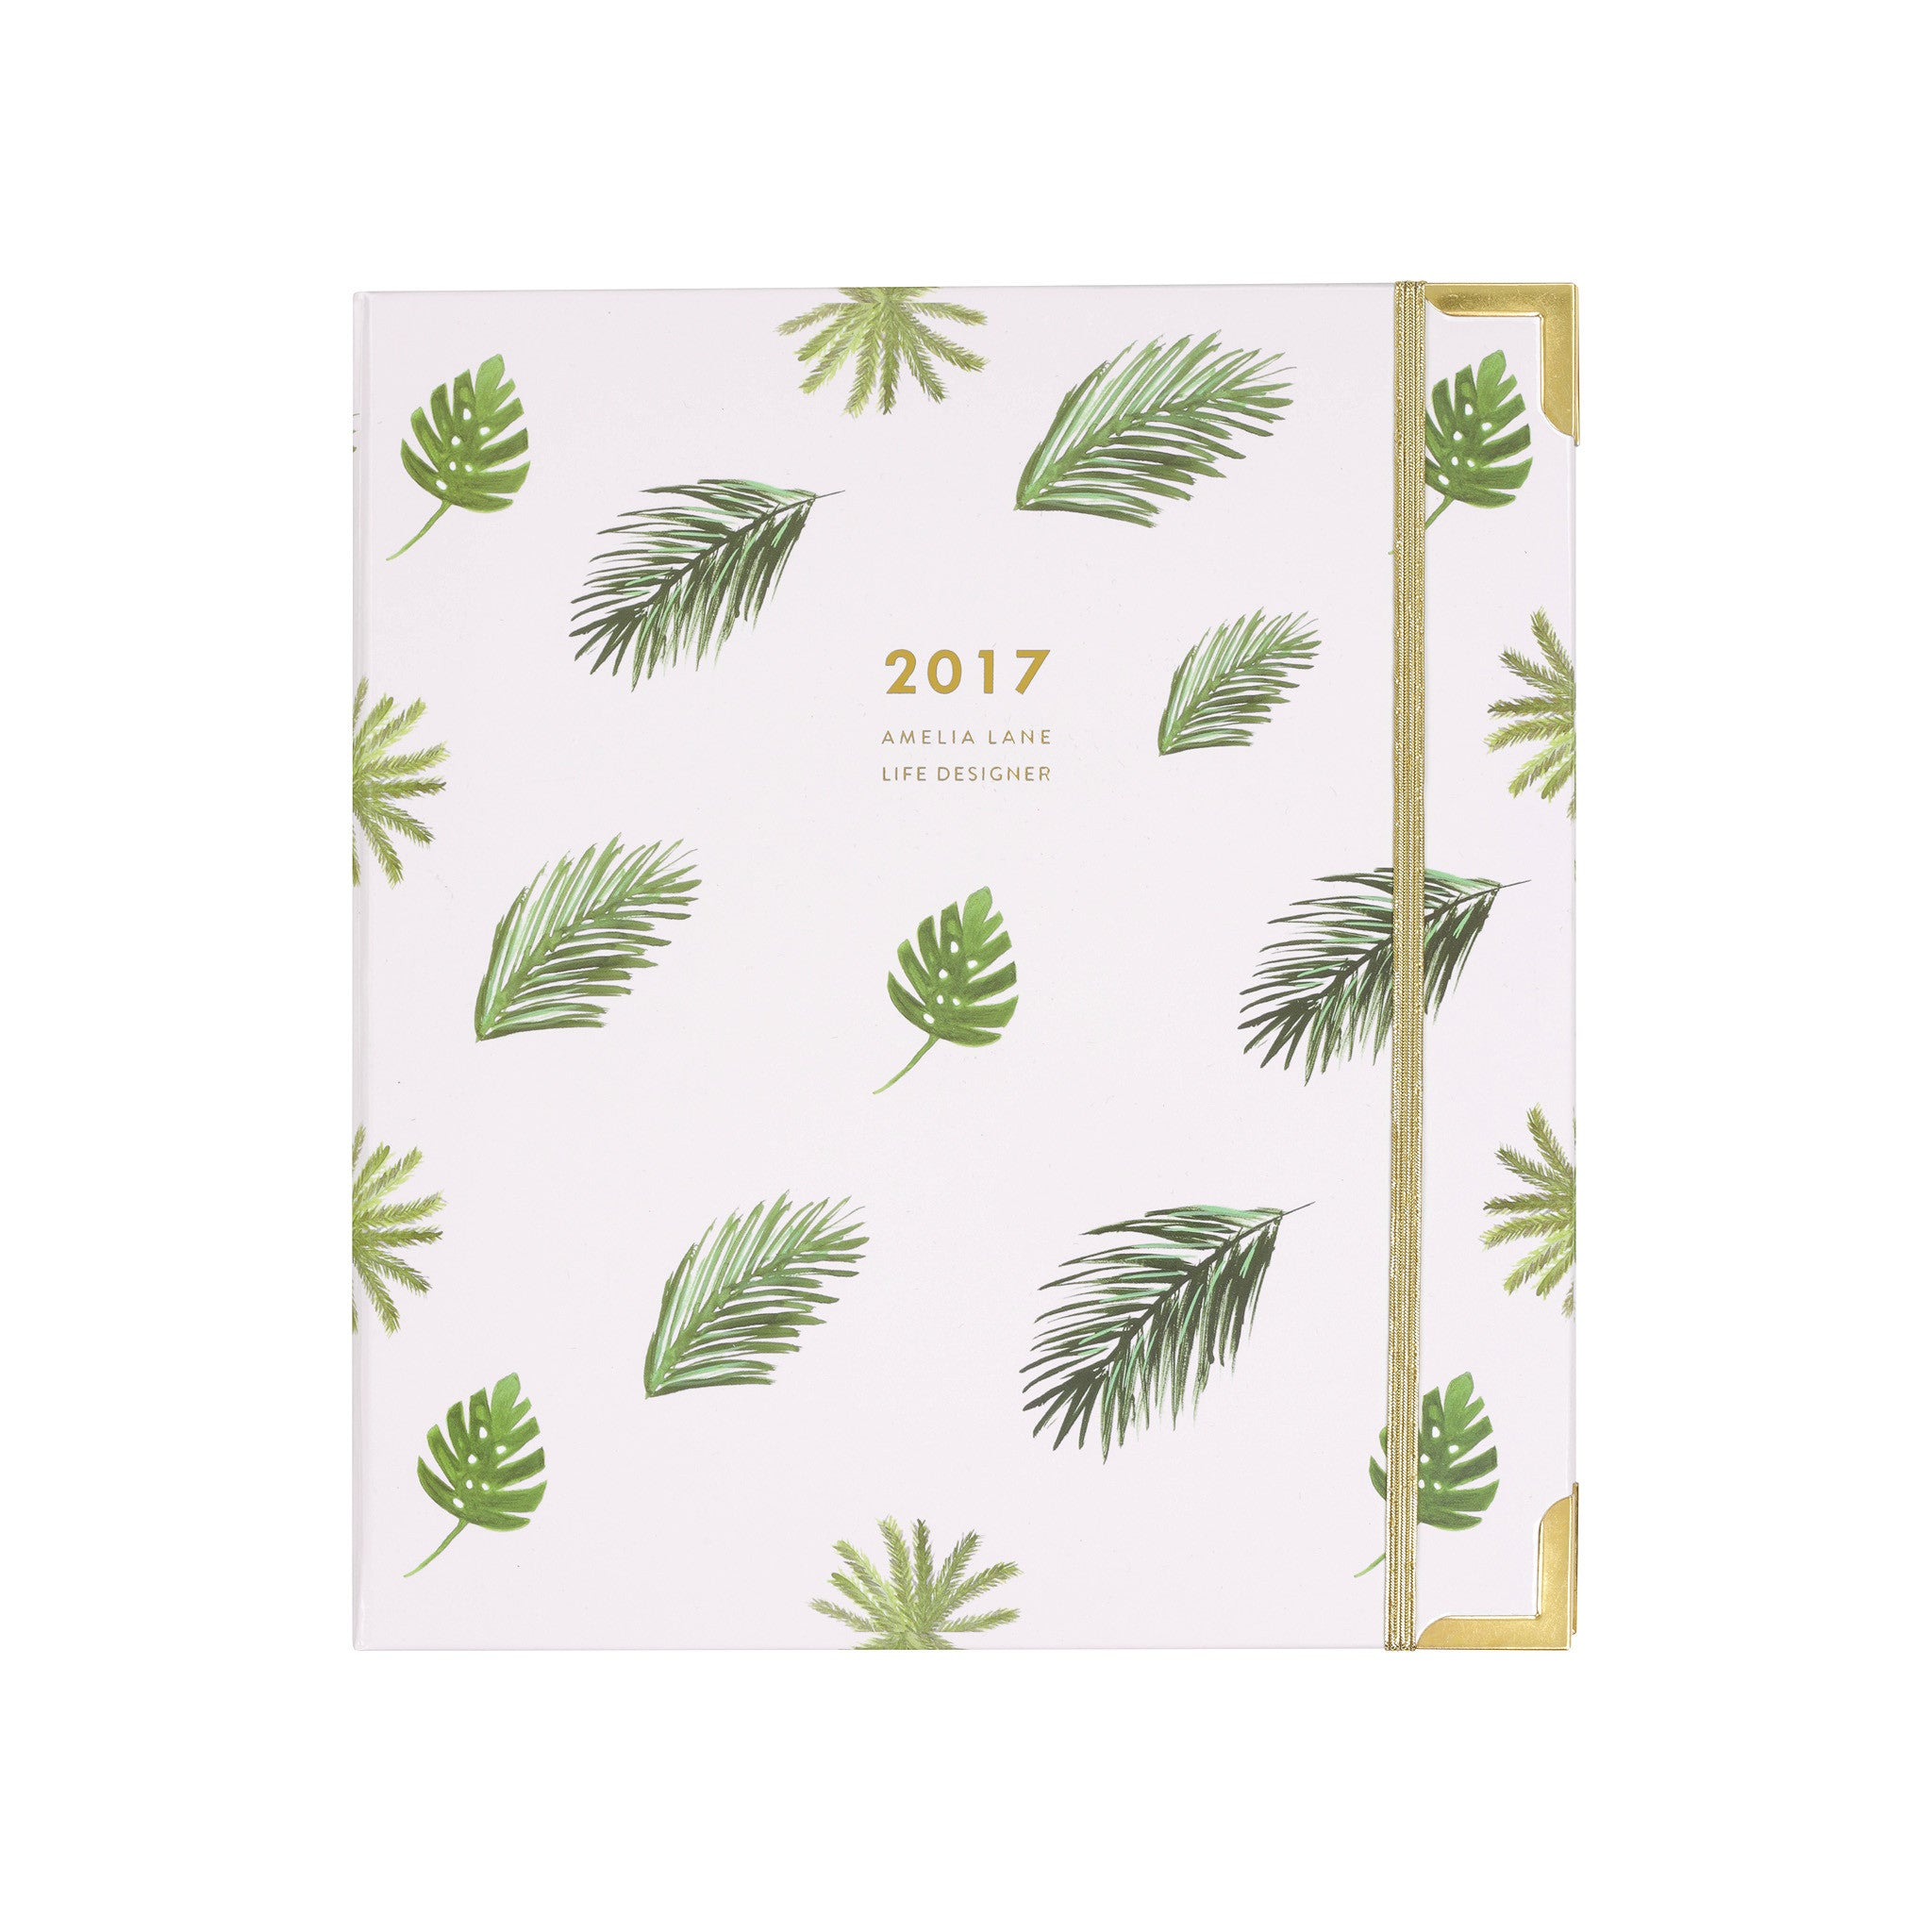 2017 Amelia Lane Life Designer {Signature, Palm Leaf Pattern}